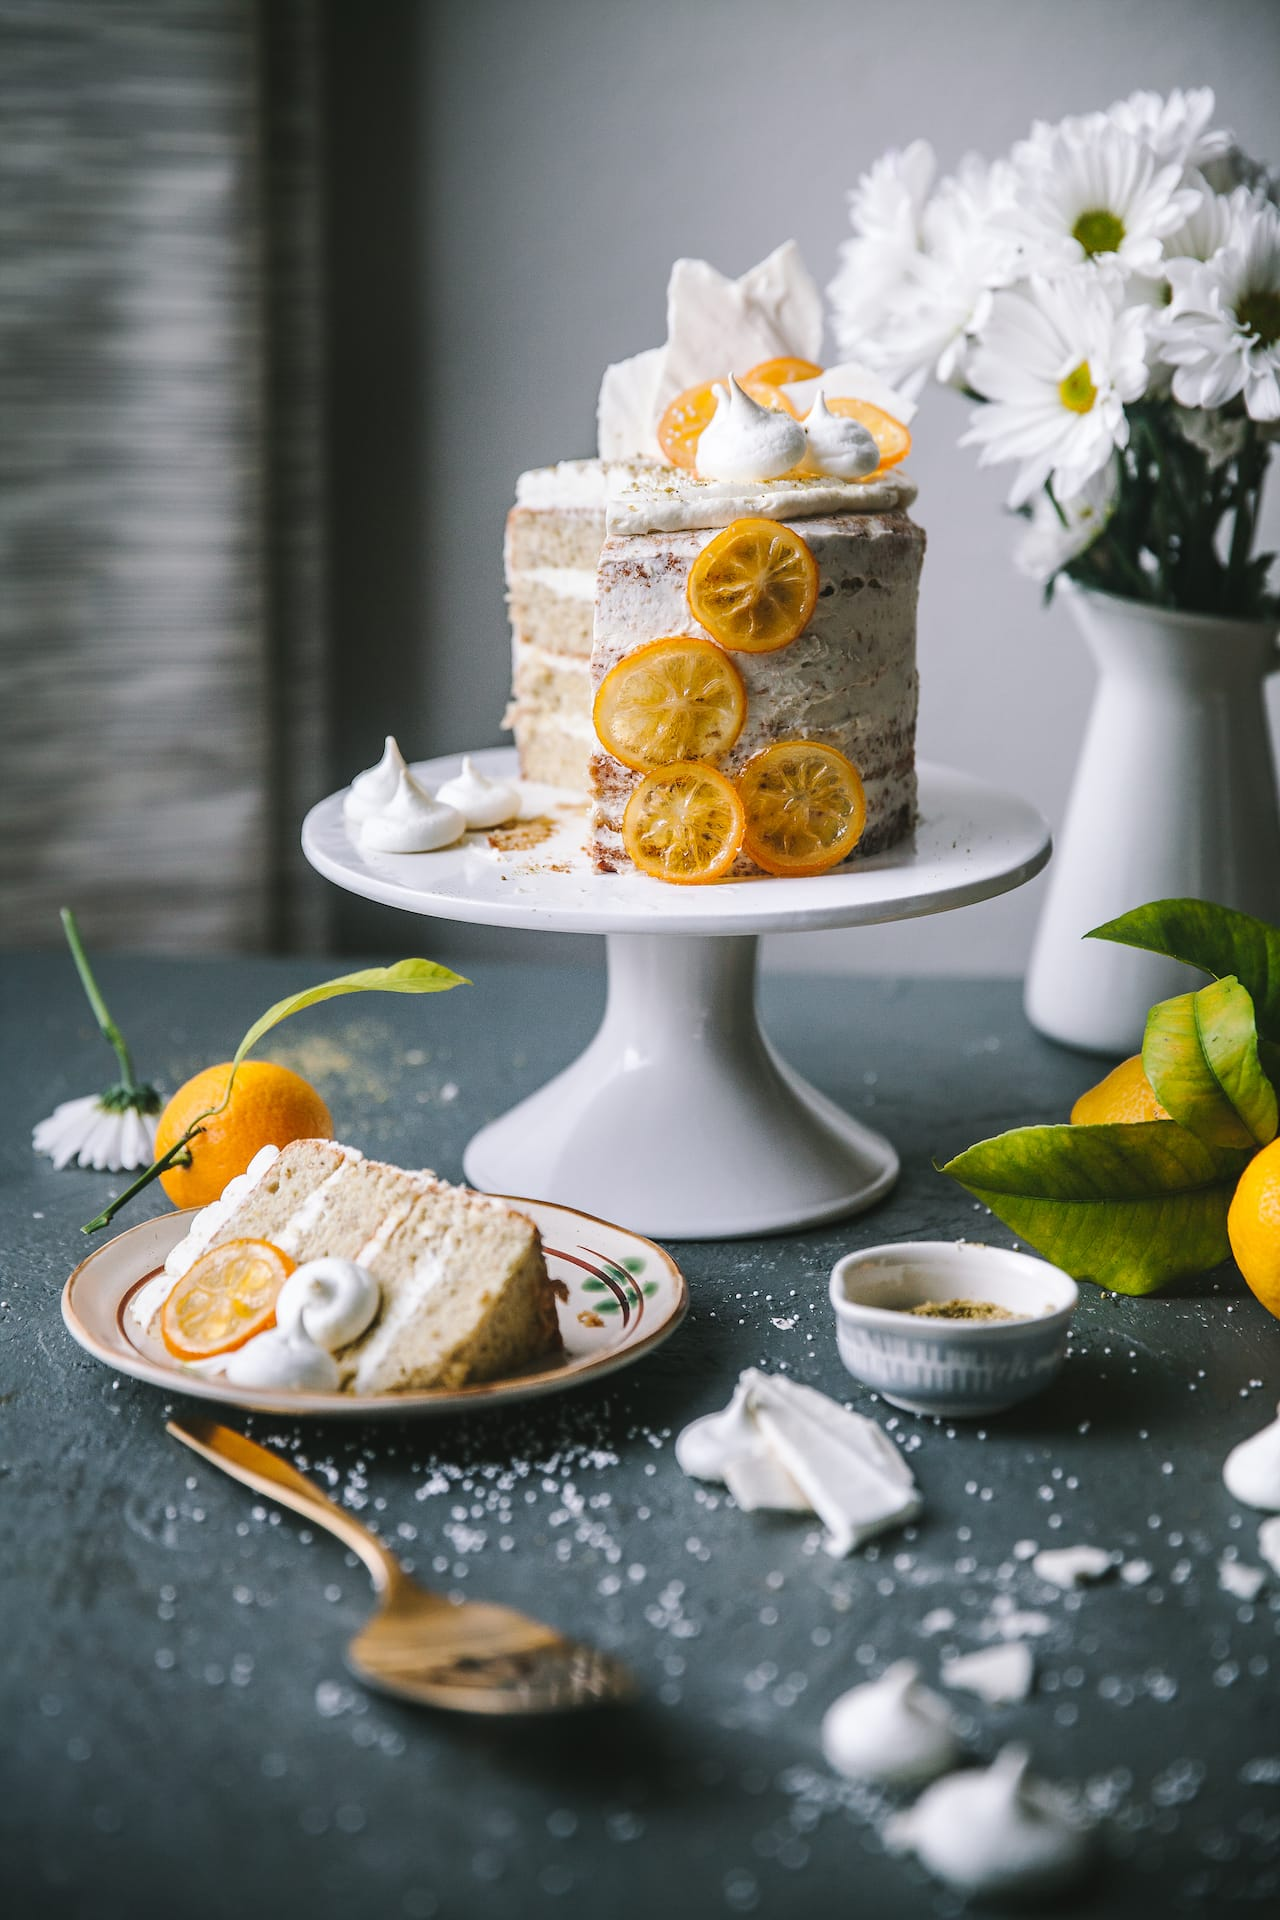 Pistachio Meringue Cake with Mascarpone Lemon Curd Frosting | Playful Cooking #cake #meringue #foodphotography #foodstyling #mascarpone